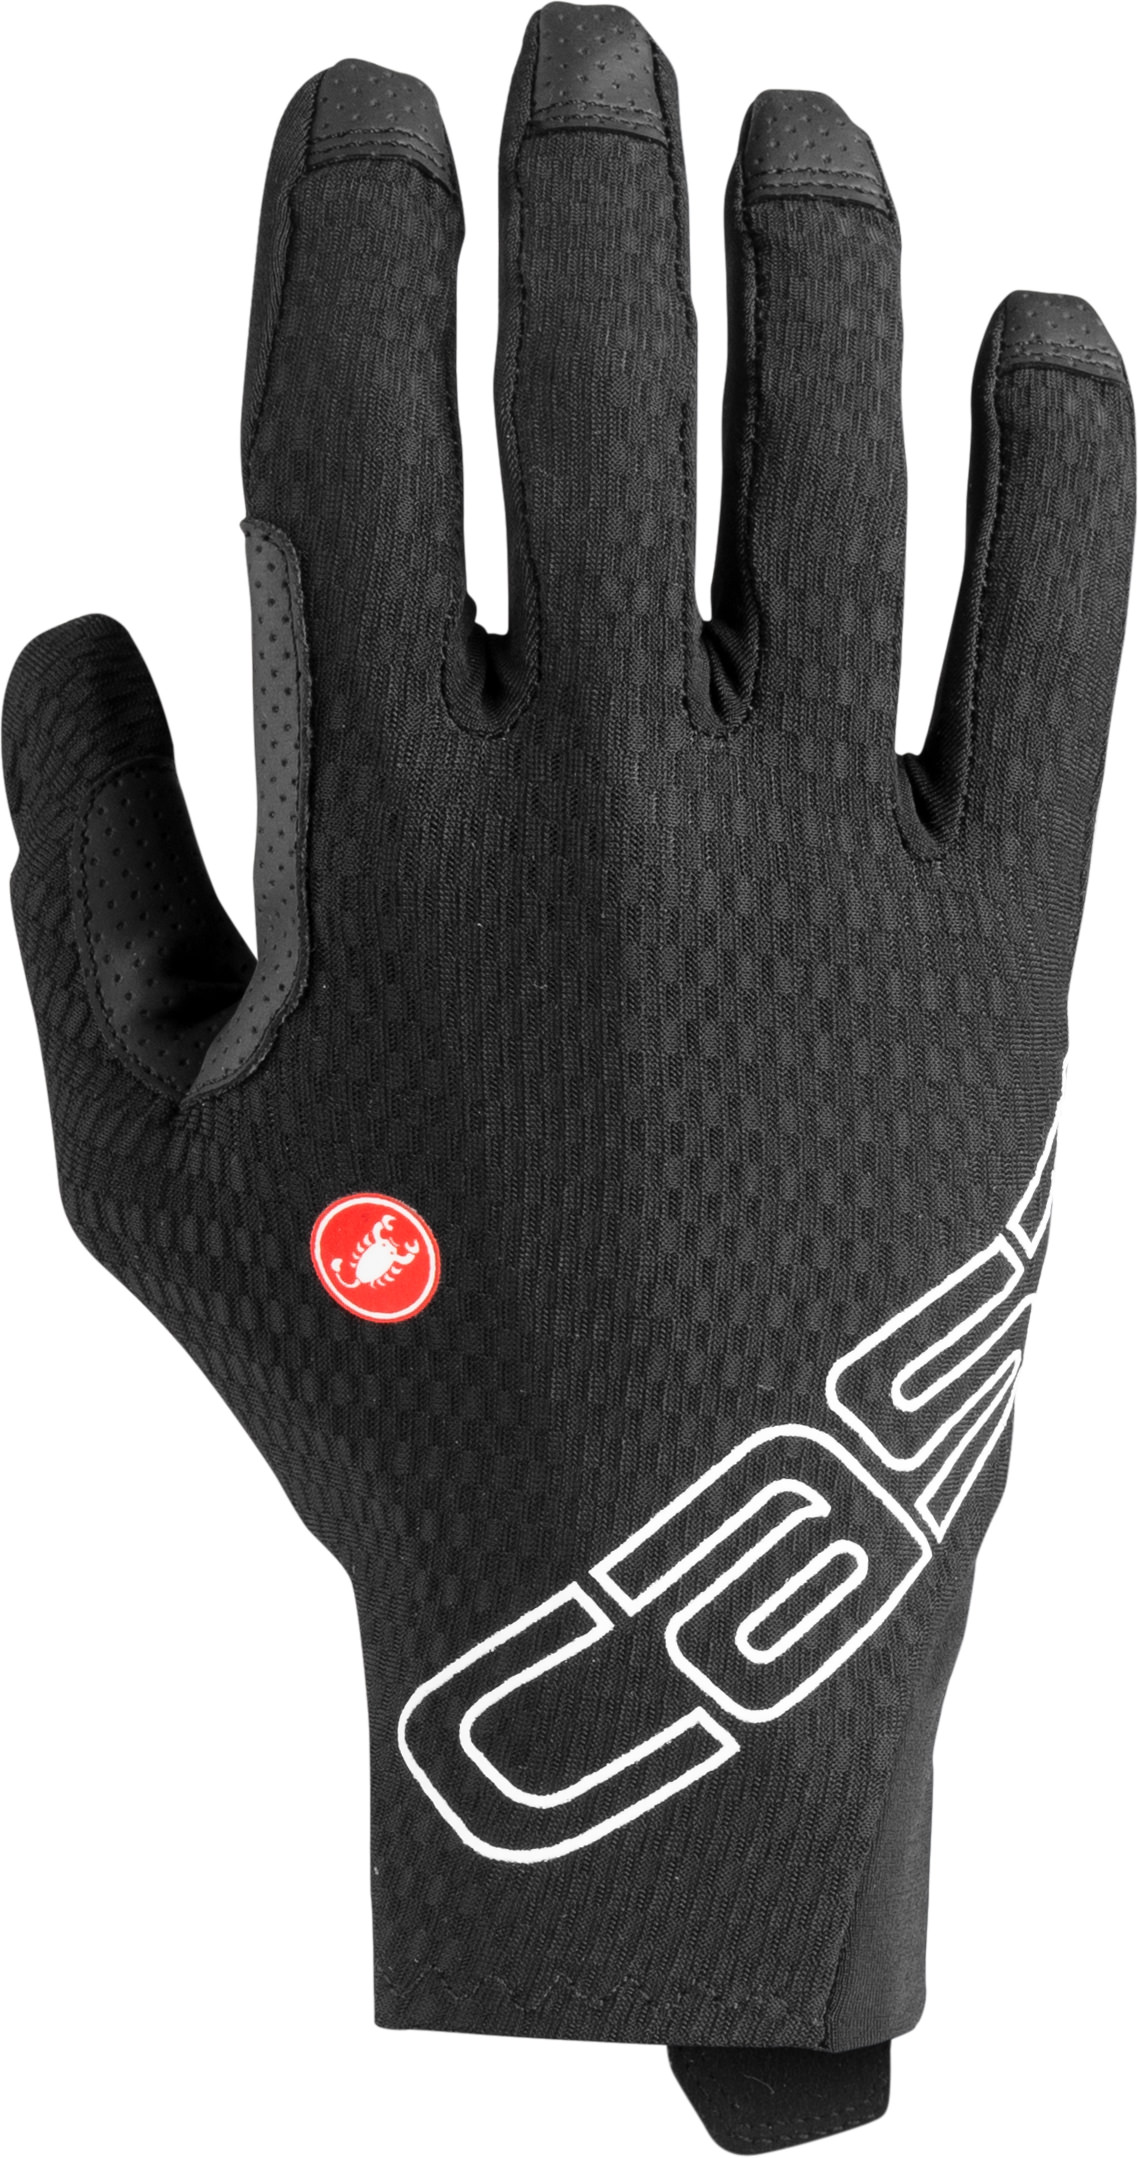 Cyklorukavice CASTELLI UNLIMITED LF GLOVE